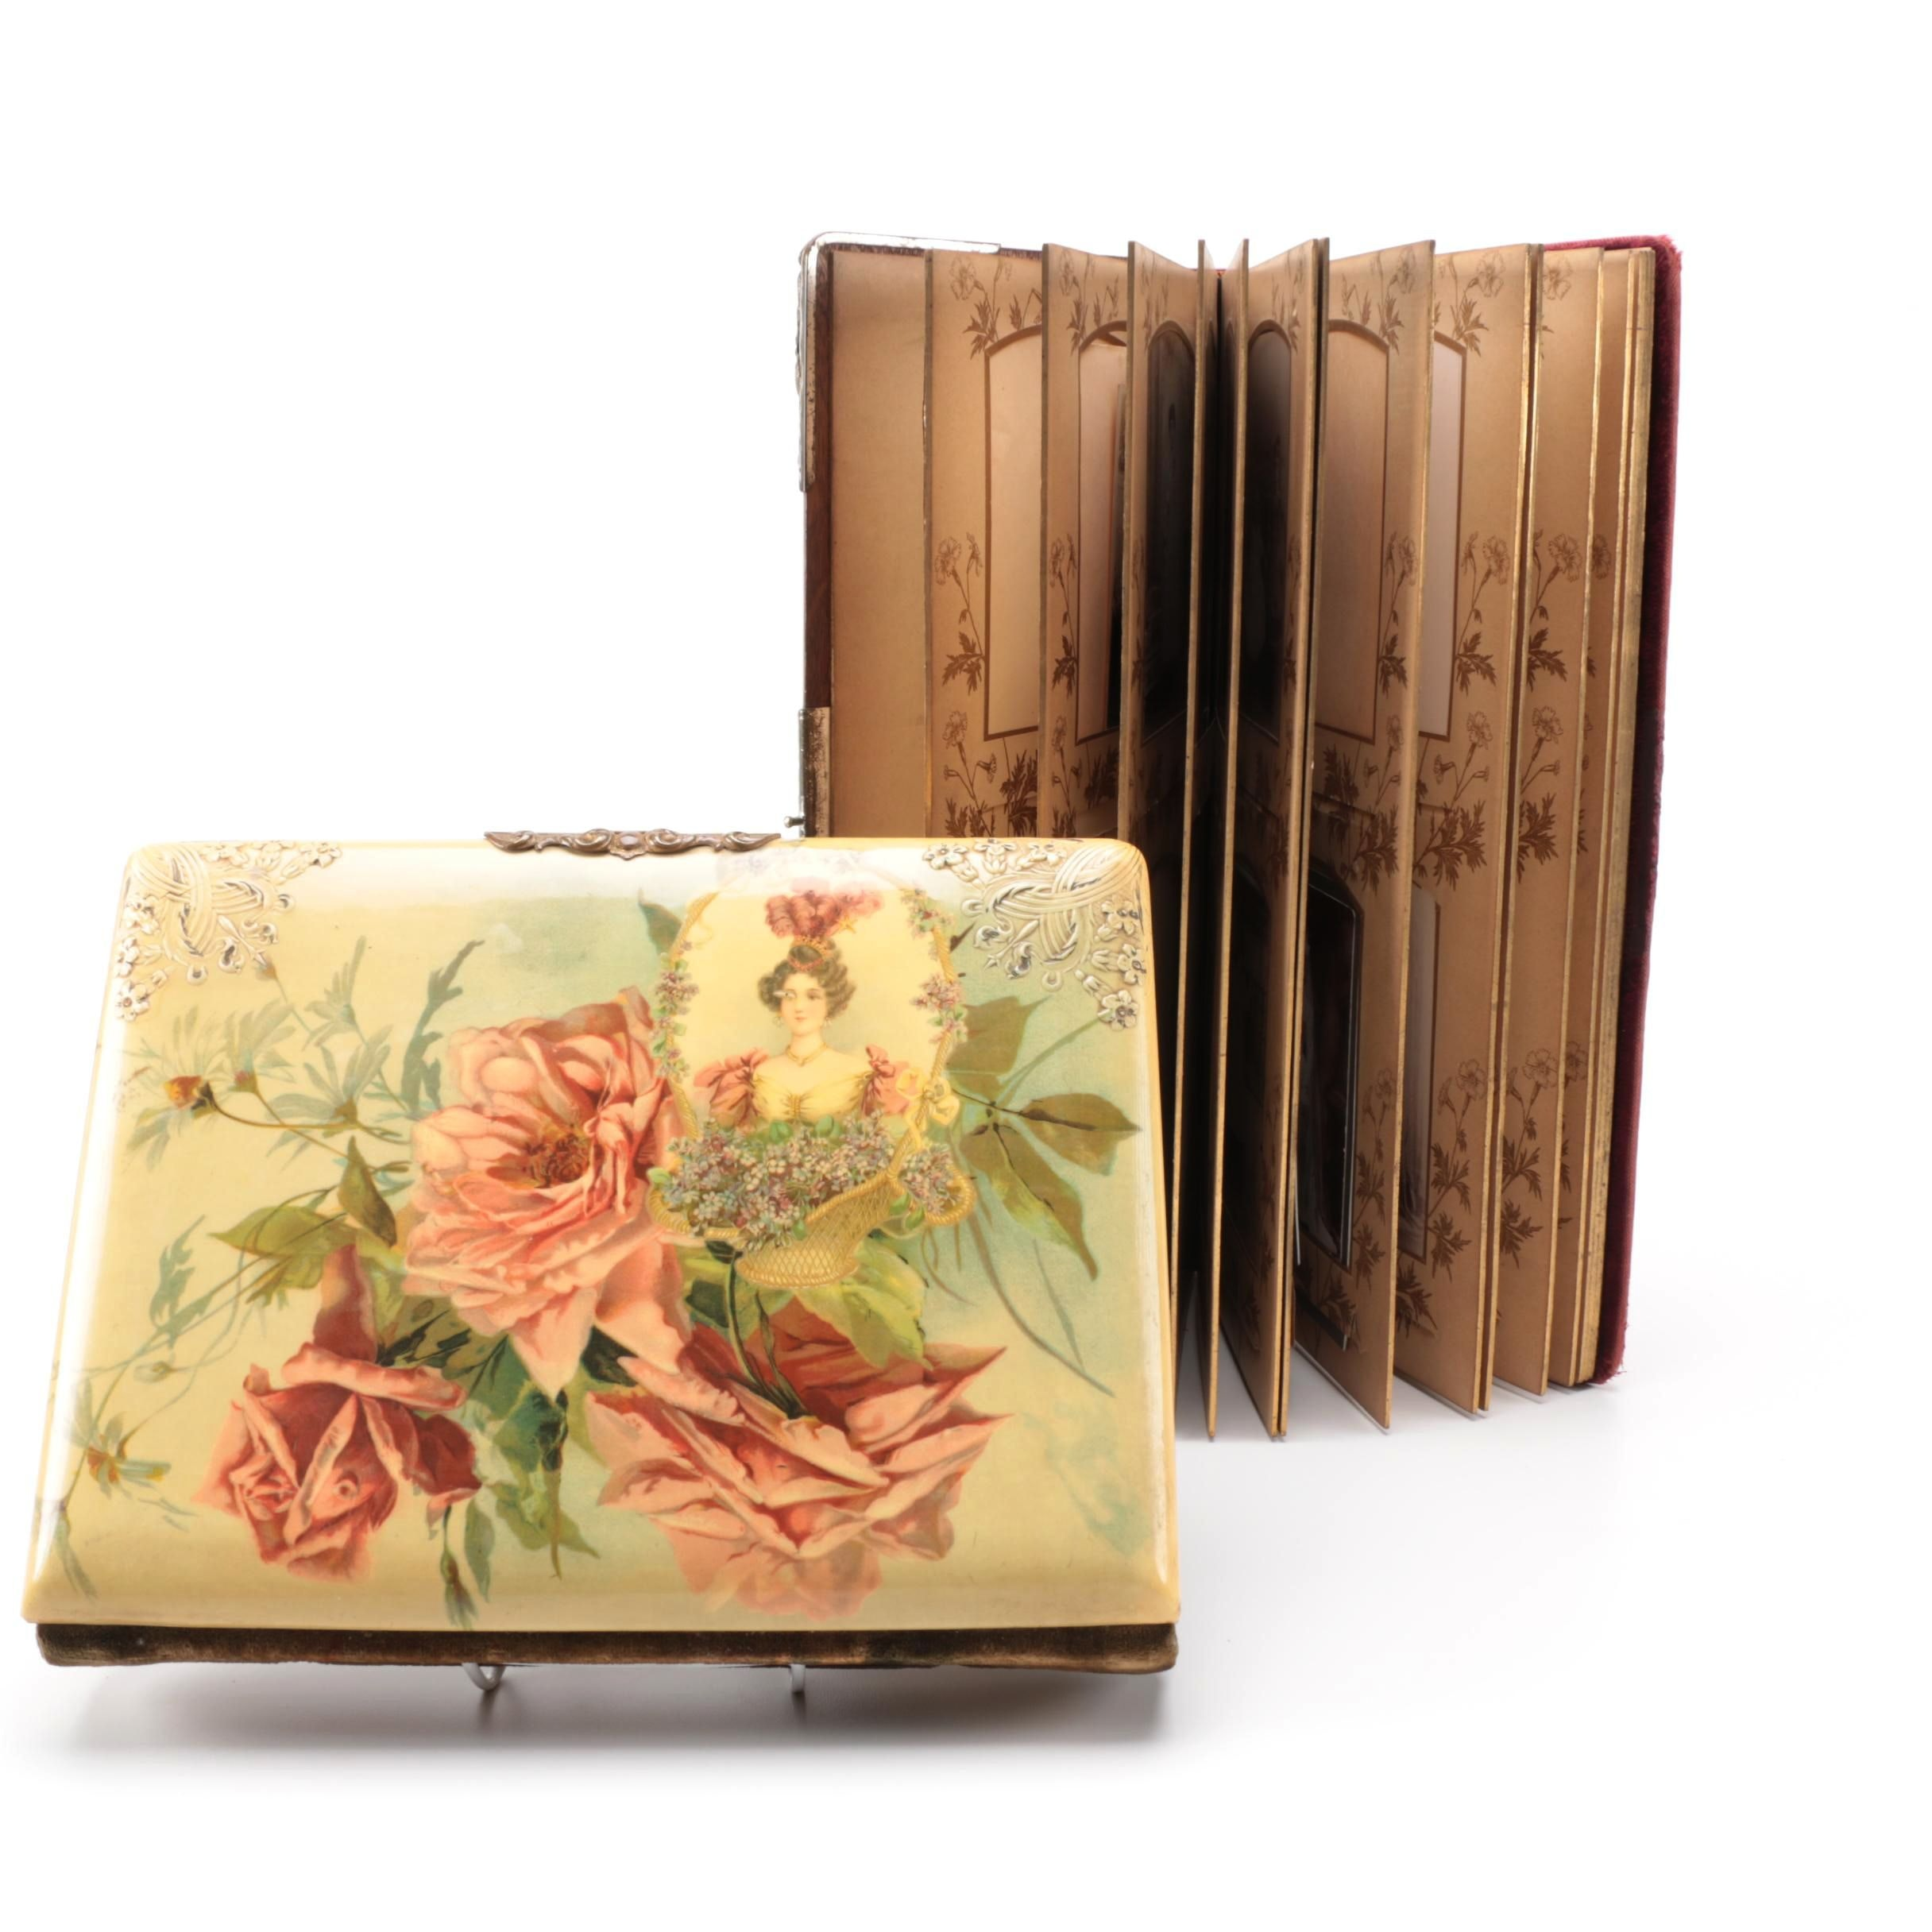 Pair of Antique Photo Albums with Photos